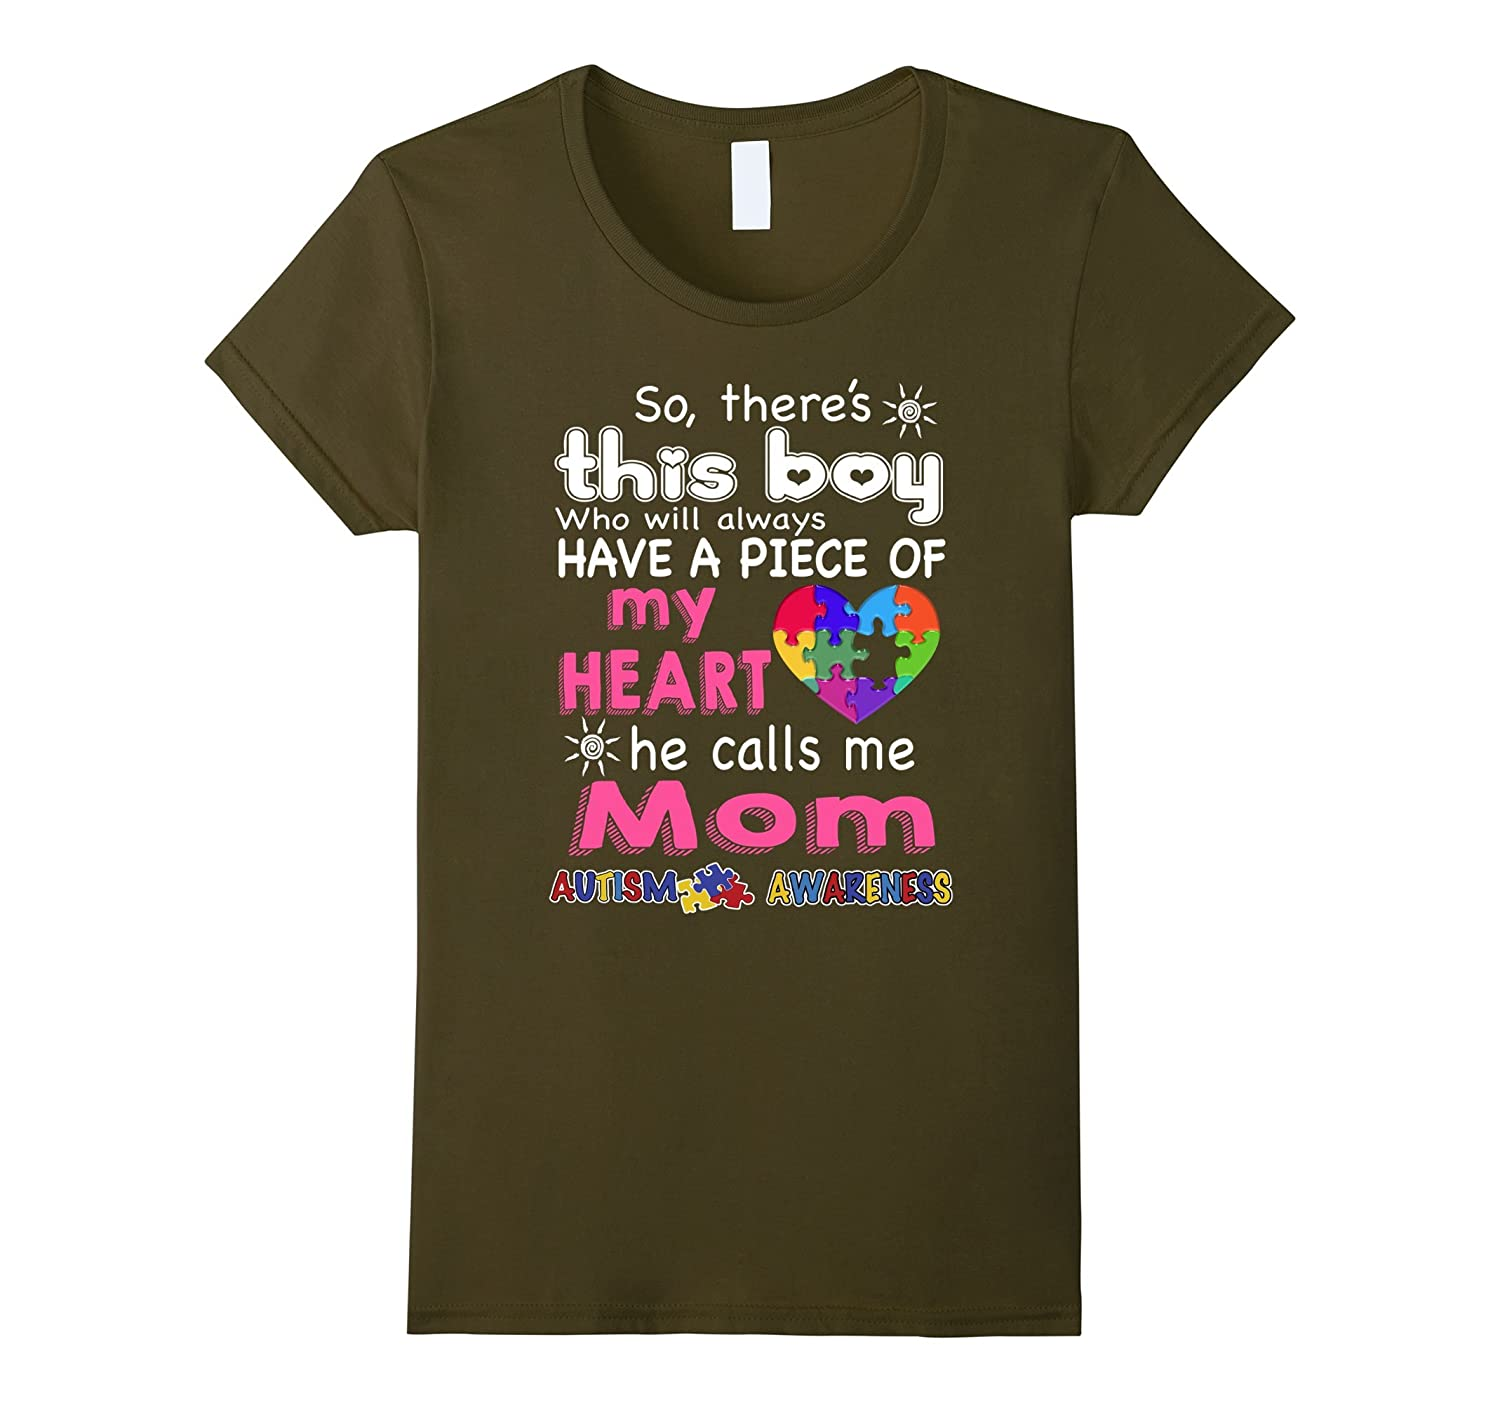 There's This boy – He call me Mom – Autism Awareness shirt